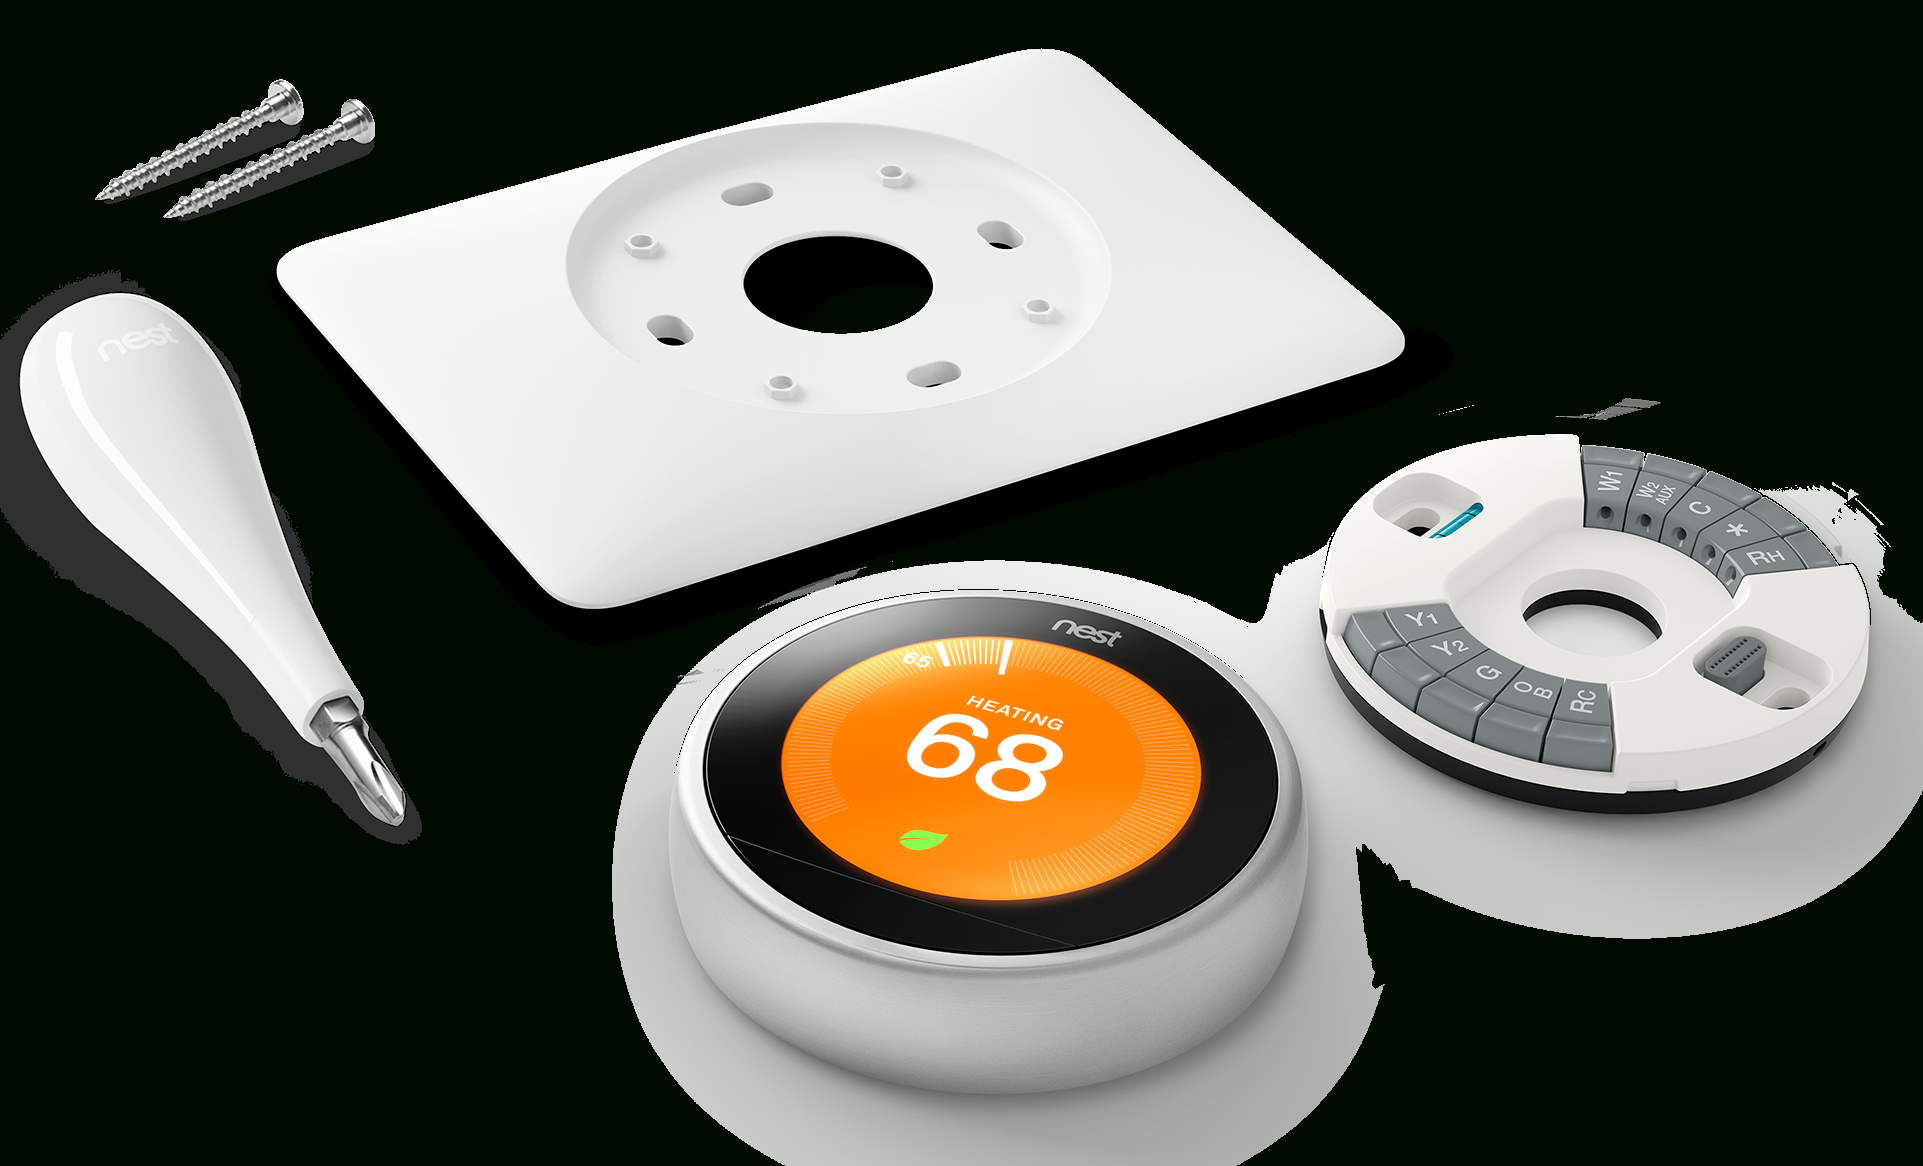 How To Install Your Nest Thermostat - Diy Nest Thermostat Wiring Diagram